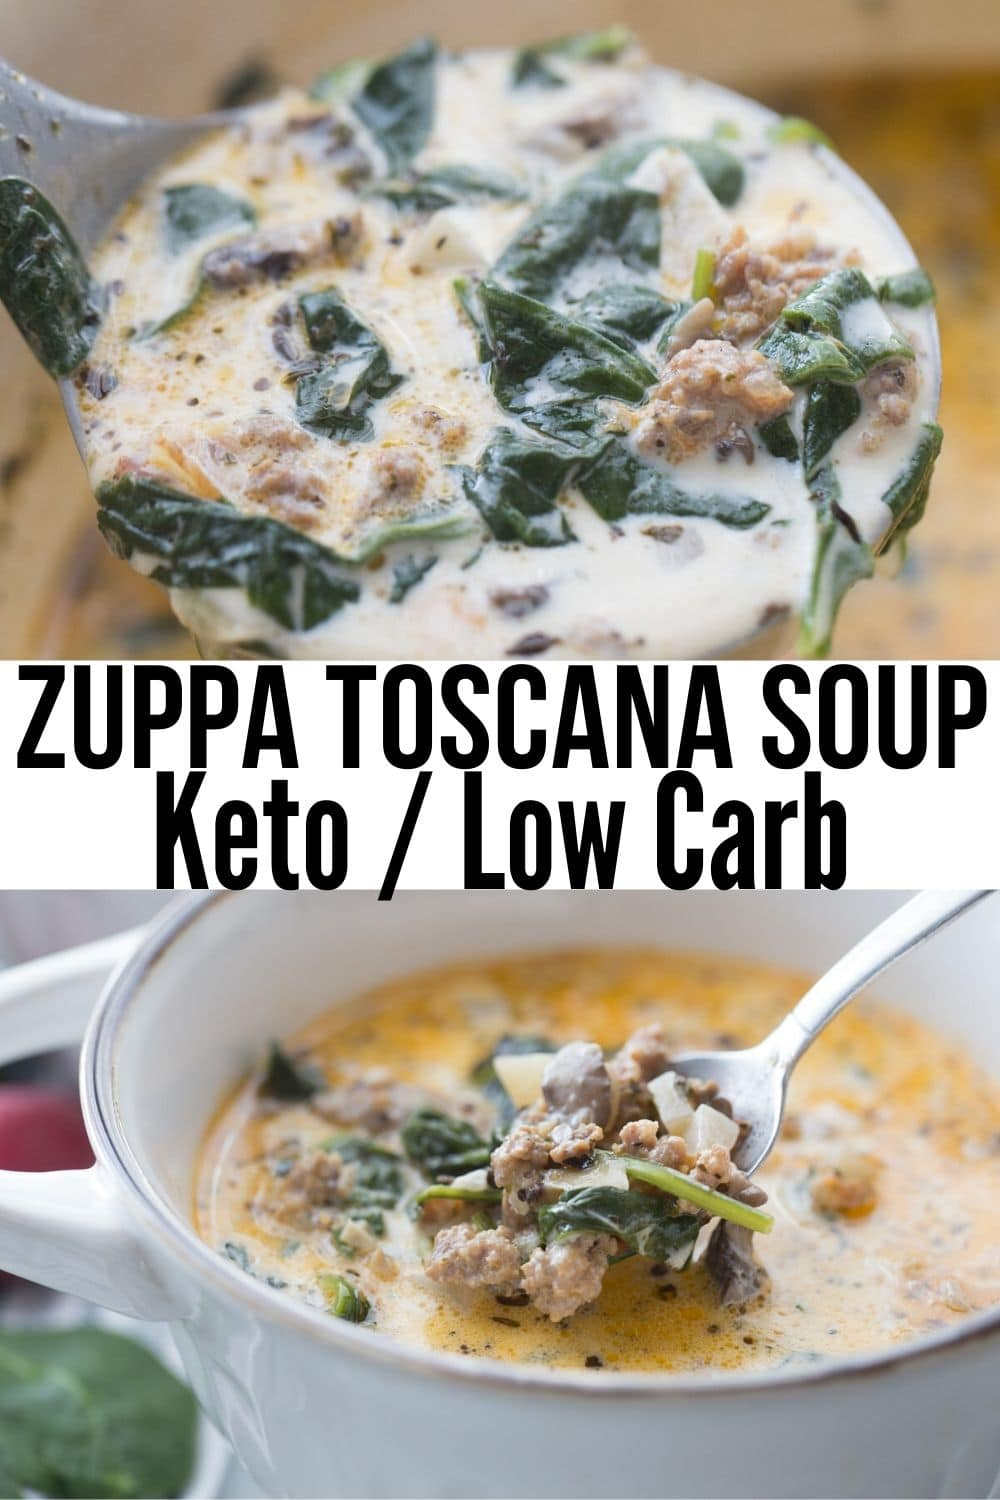 collage of keto cuppa toscana soup with a ladle of soup and a bowl